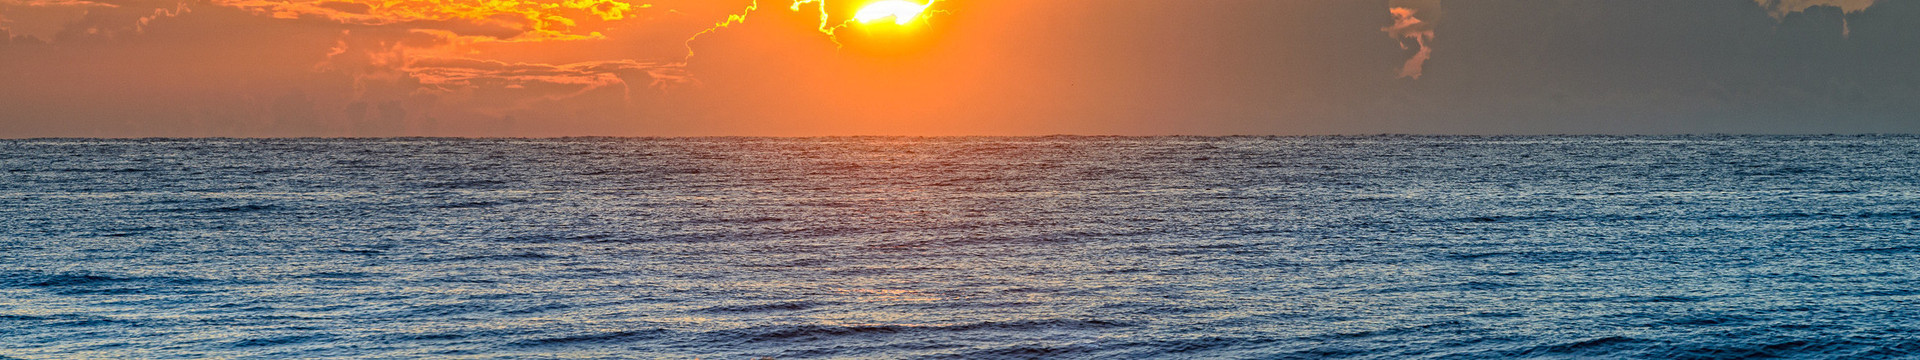 1 Bedroom Ocean View Suites at our Myrtle Beach Resort and Oceanfront Hotel | Sunset Over the Ocean